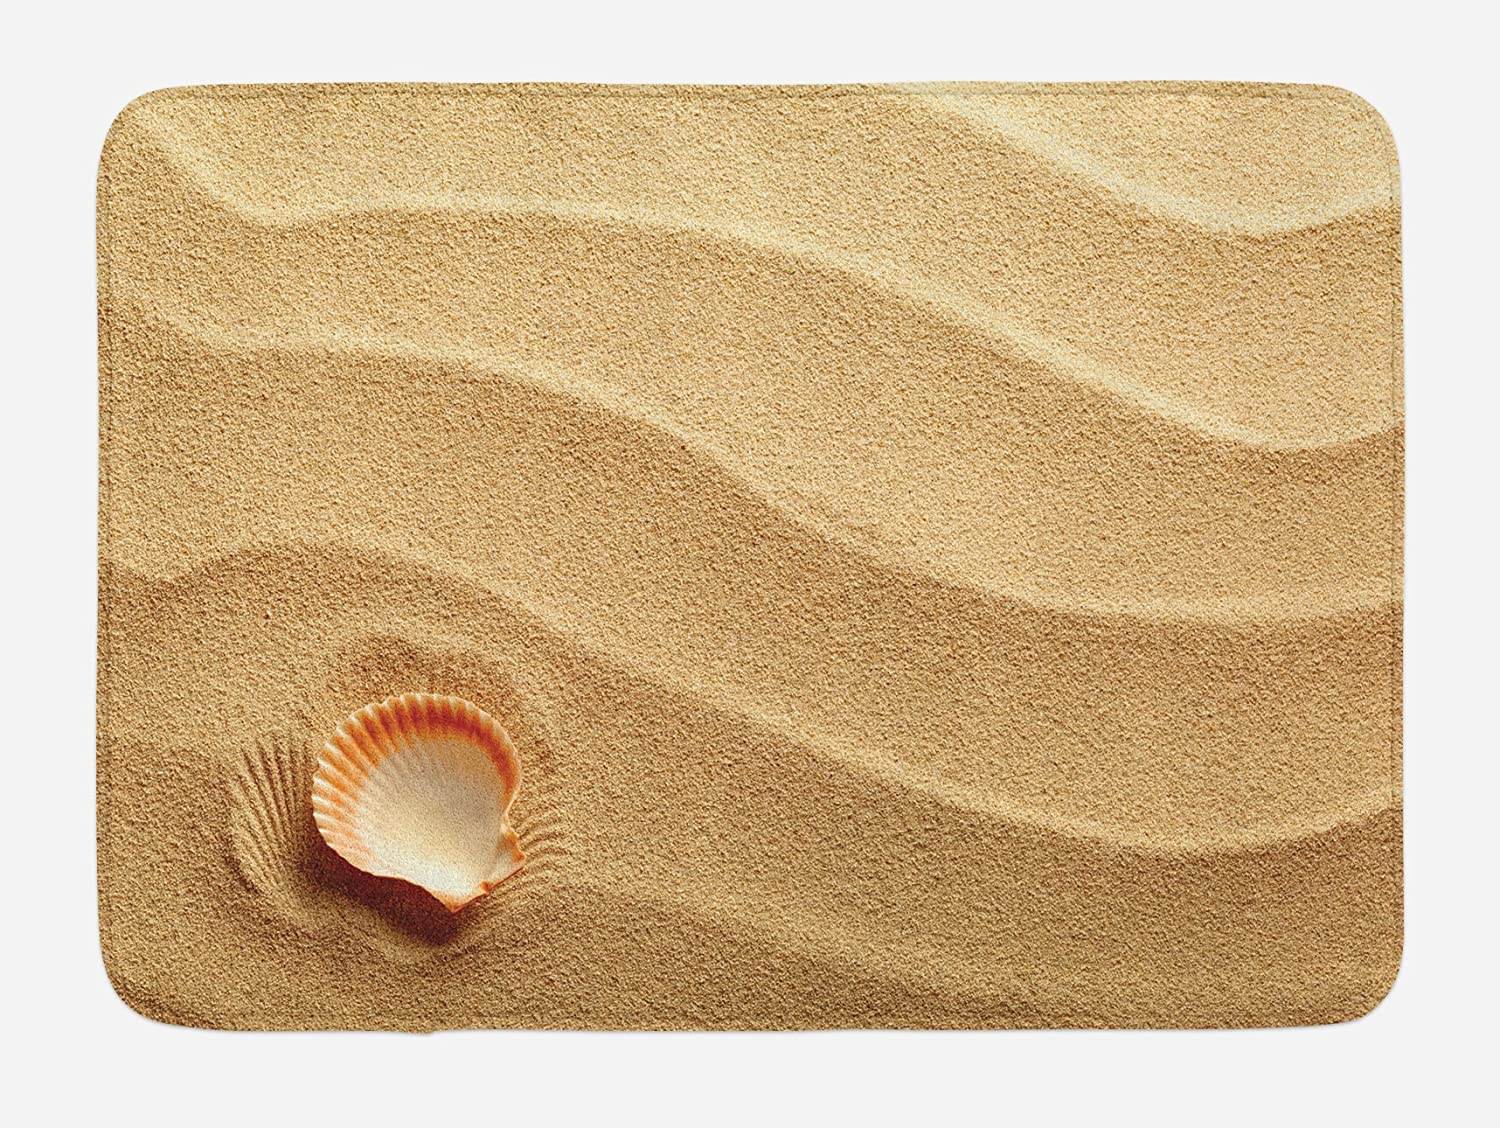 Seashells Bath Mat, Little Seashell on Golden Sand